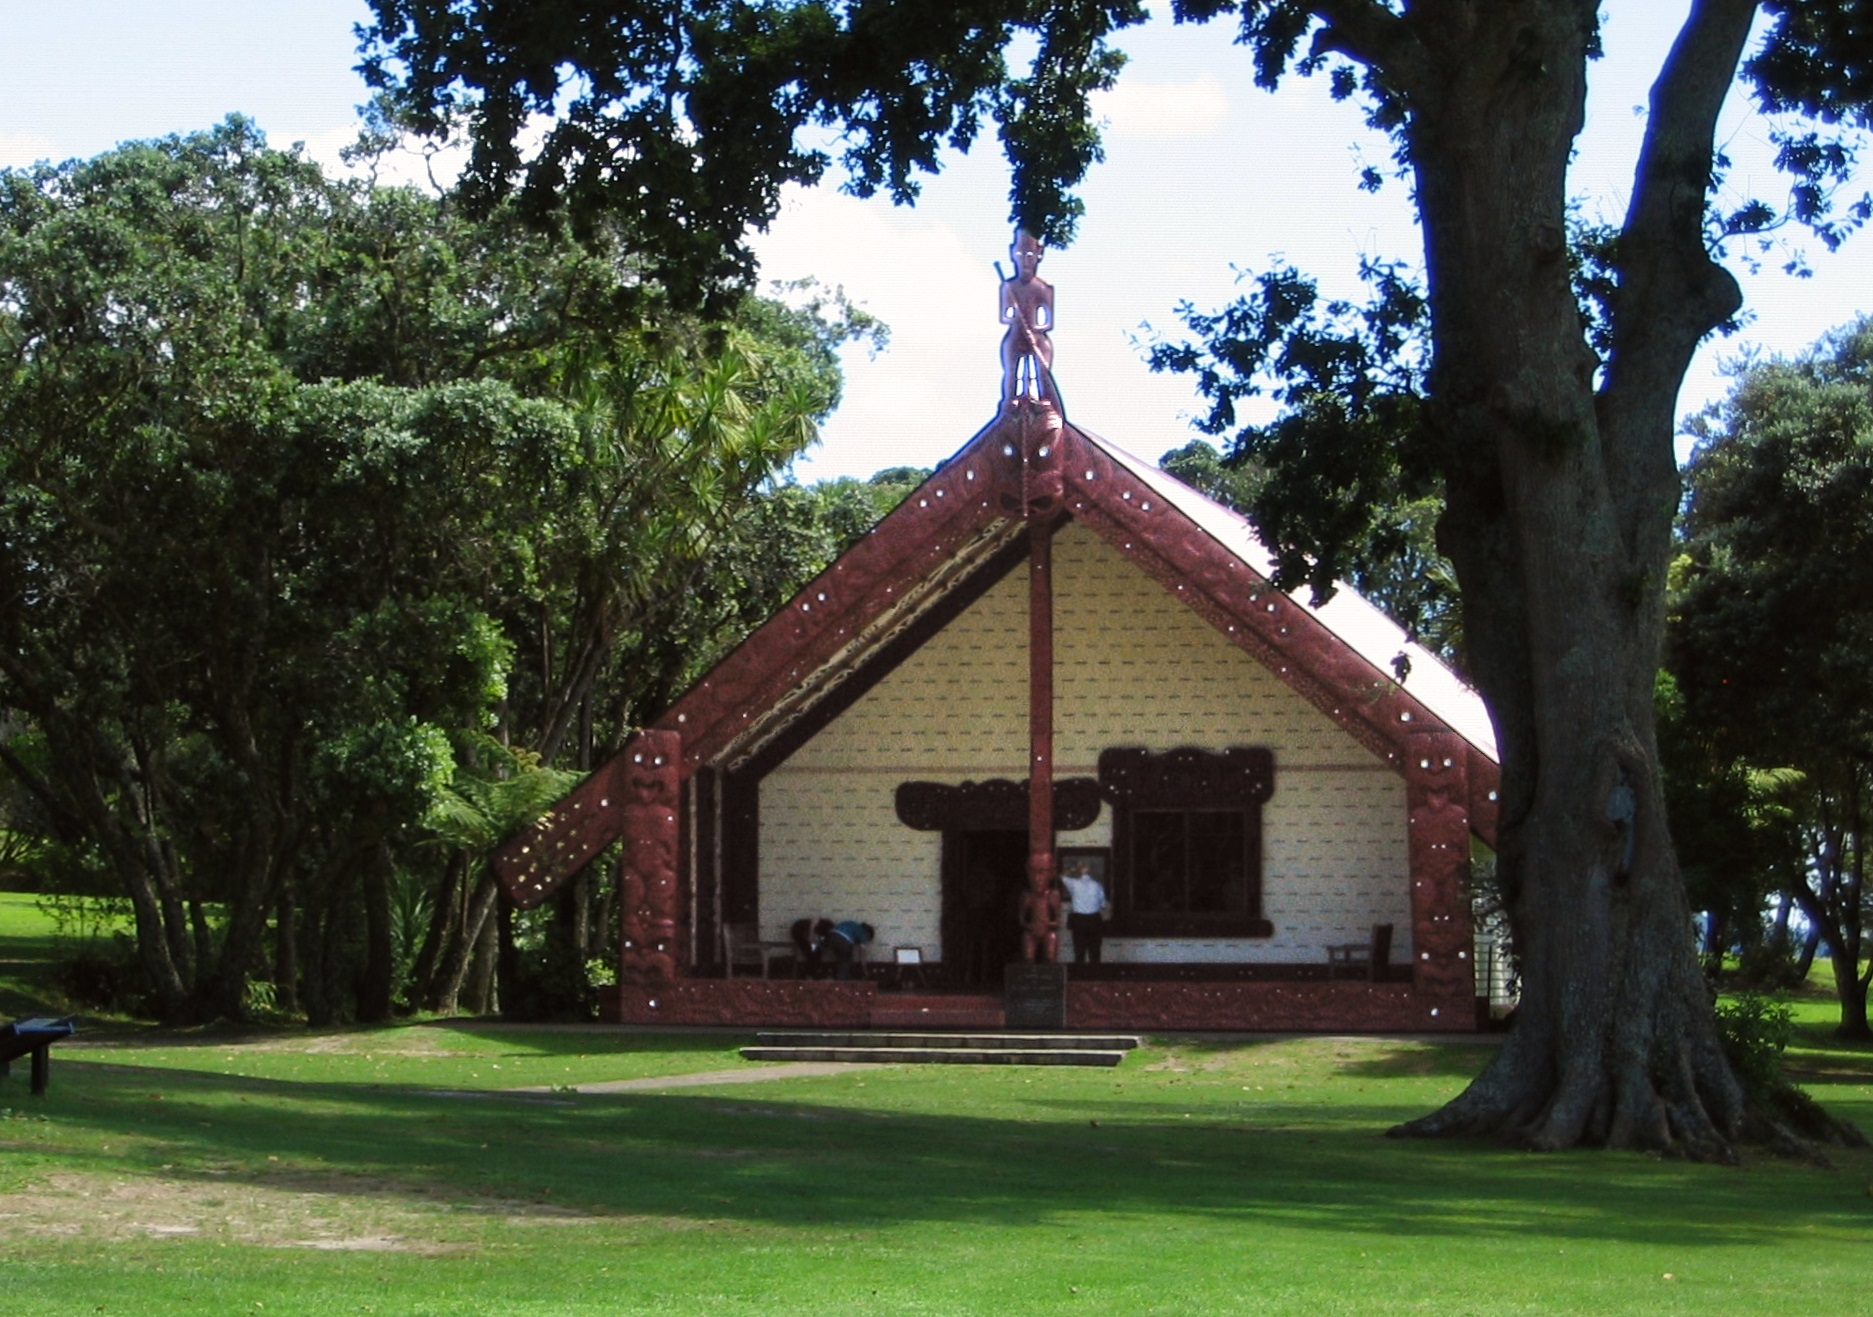 Building with a carved pillar under a tree, Waitangi Treaty Grounds, New Zealand